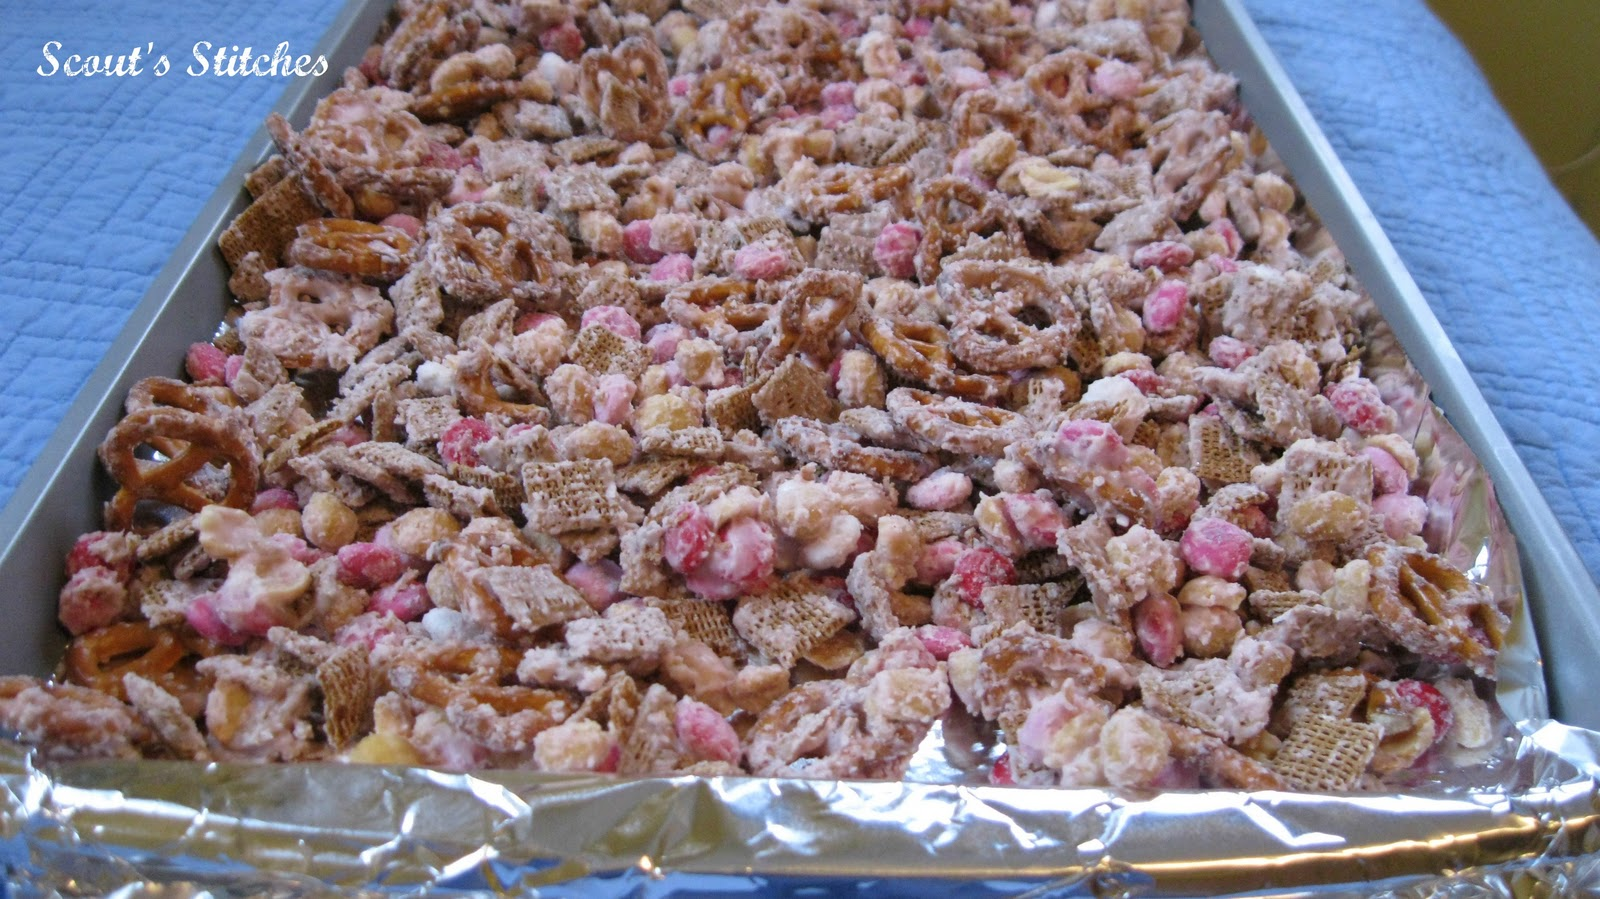 ... Just Dump Melted Coating On Top Of Trail Mix And Stir Until It Is  Evenly Coated. Lay Flat On Aluminum Foil Or Wax Paper Coated Cookie Sheets  To Let Dry.